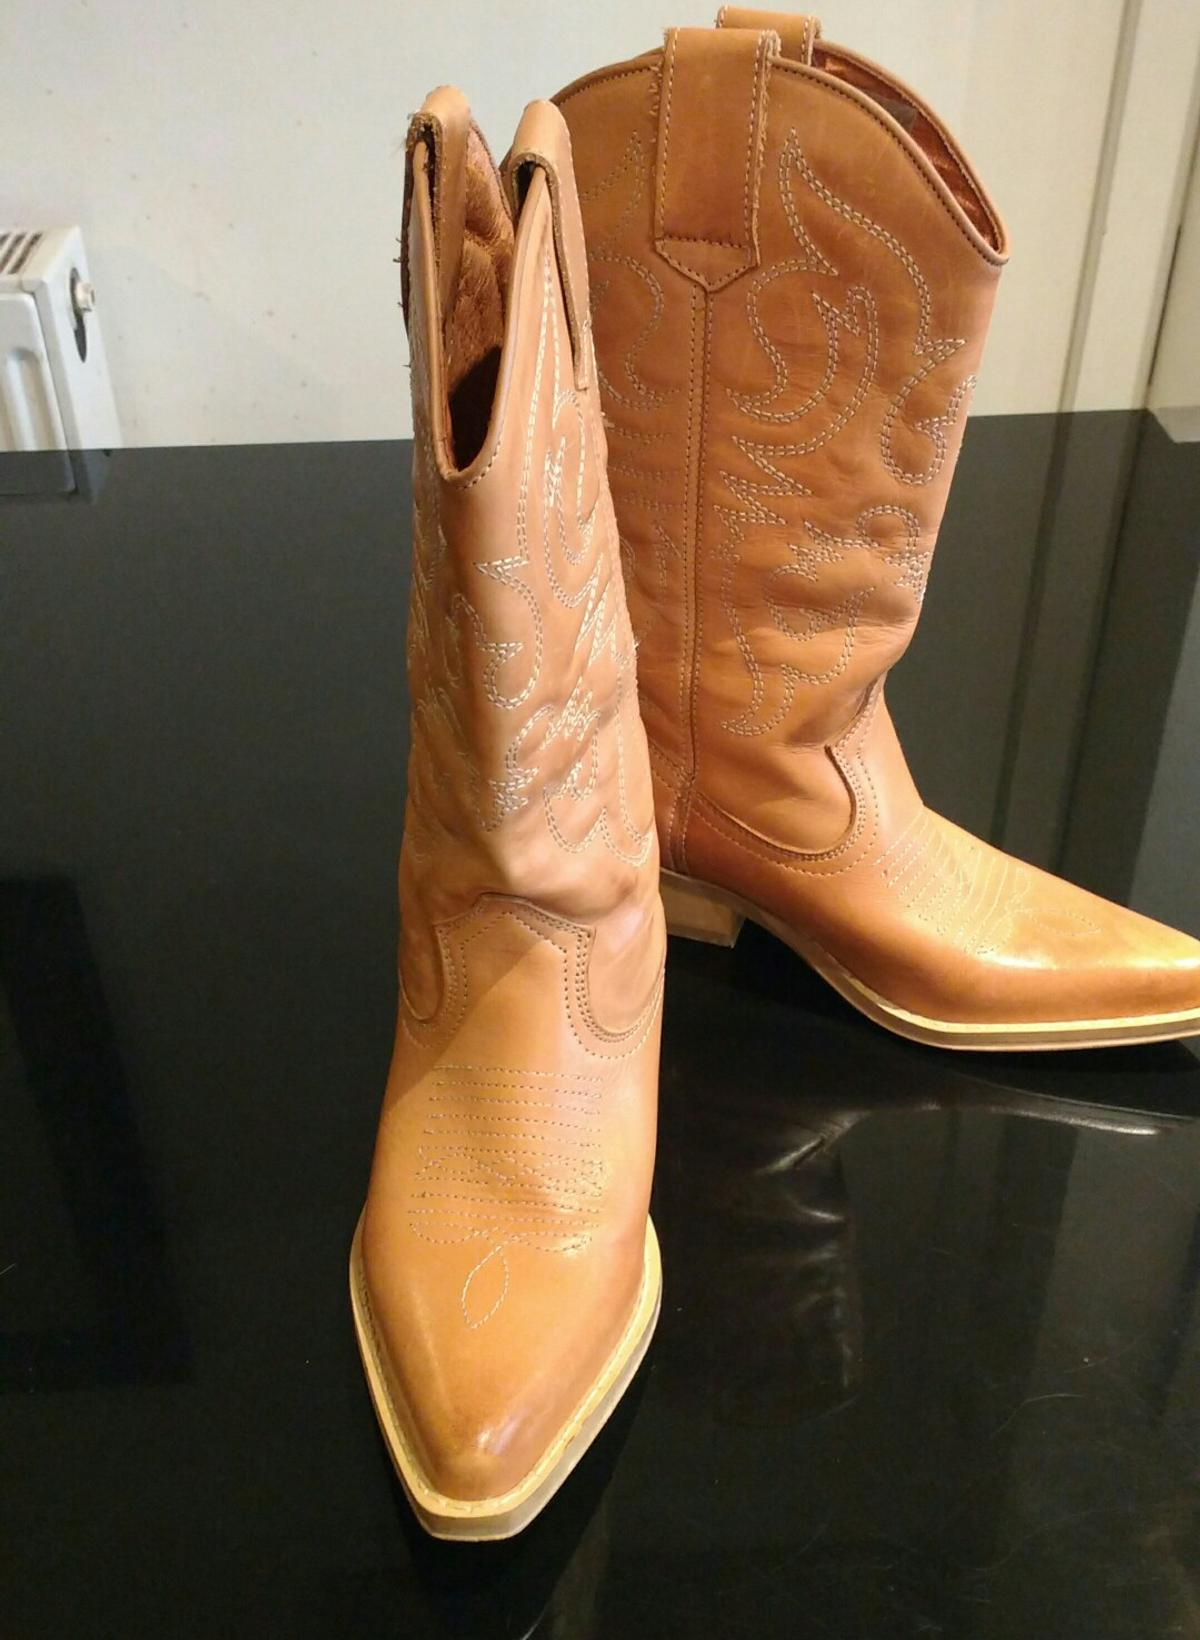 Girlsladies cowboy boots size 3. in FY3 Blackpool for